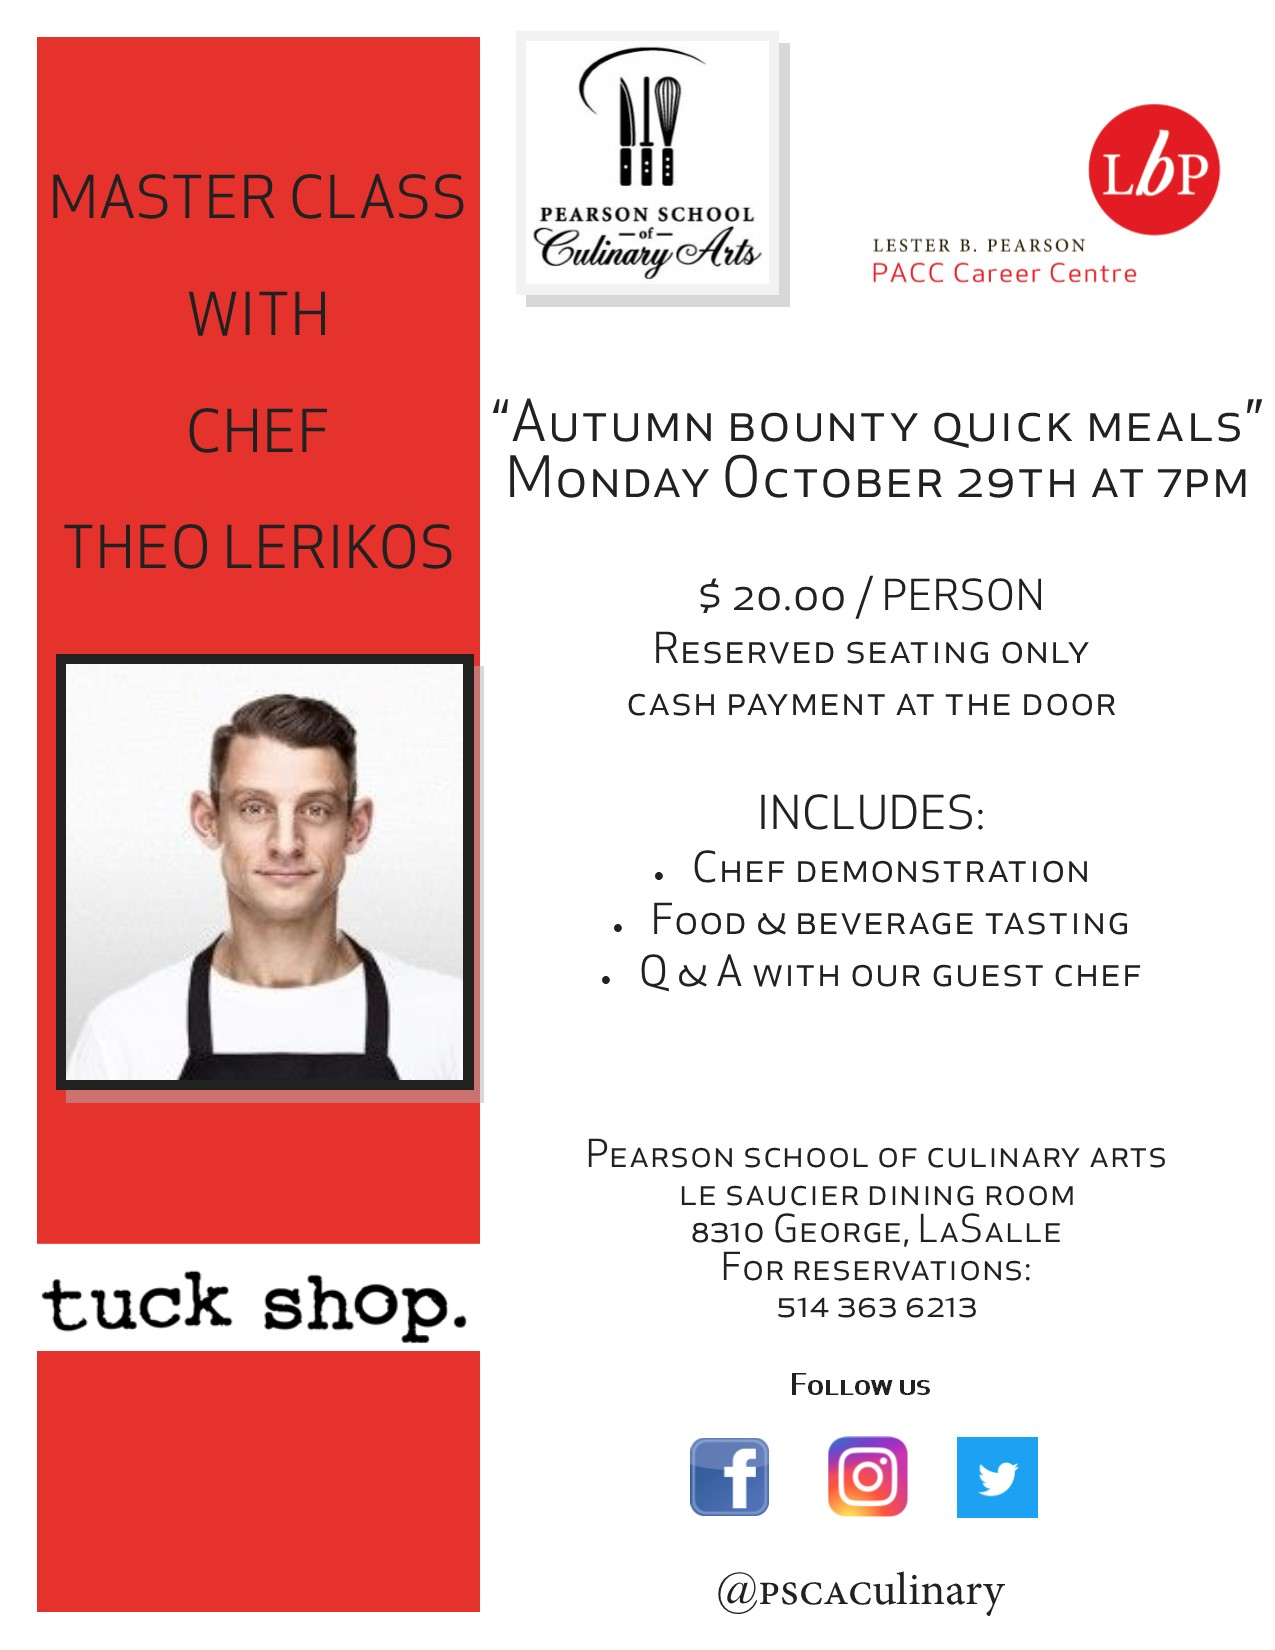 Master Class at Pearson School of Culinary Arts